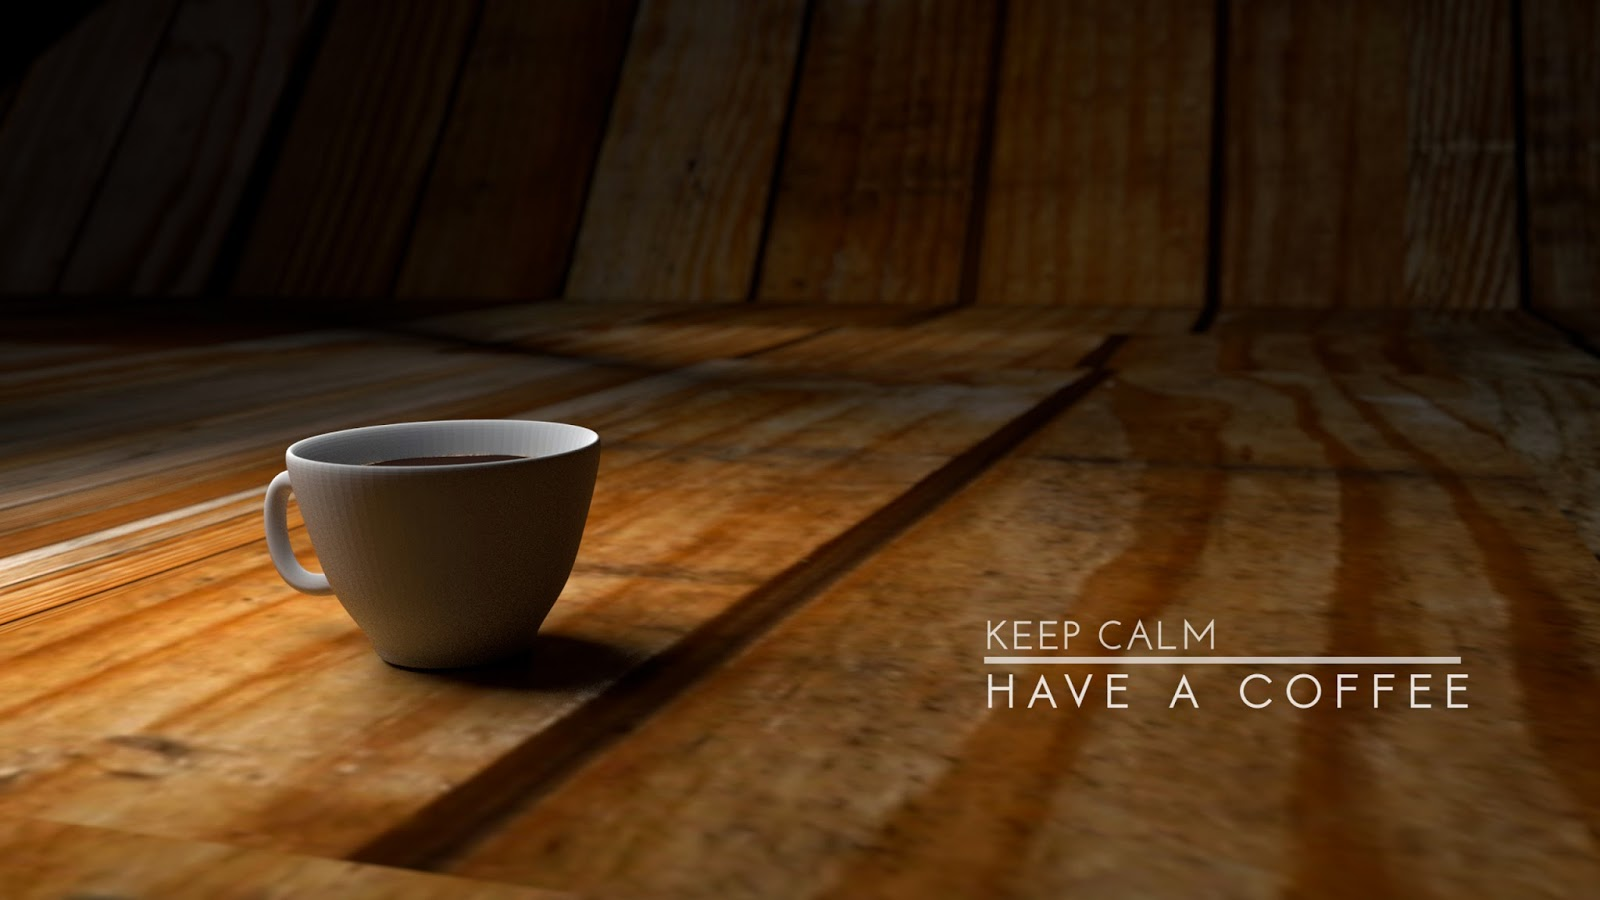 Desktop Wallpaper Hd 3d Full Screen Baby 116 Coffee Wallpapers Most Beautiful Places In The World